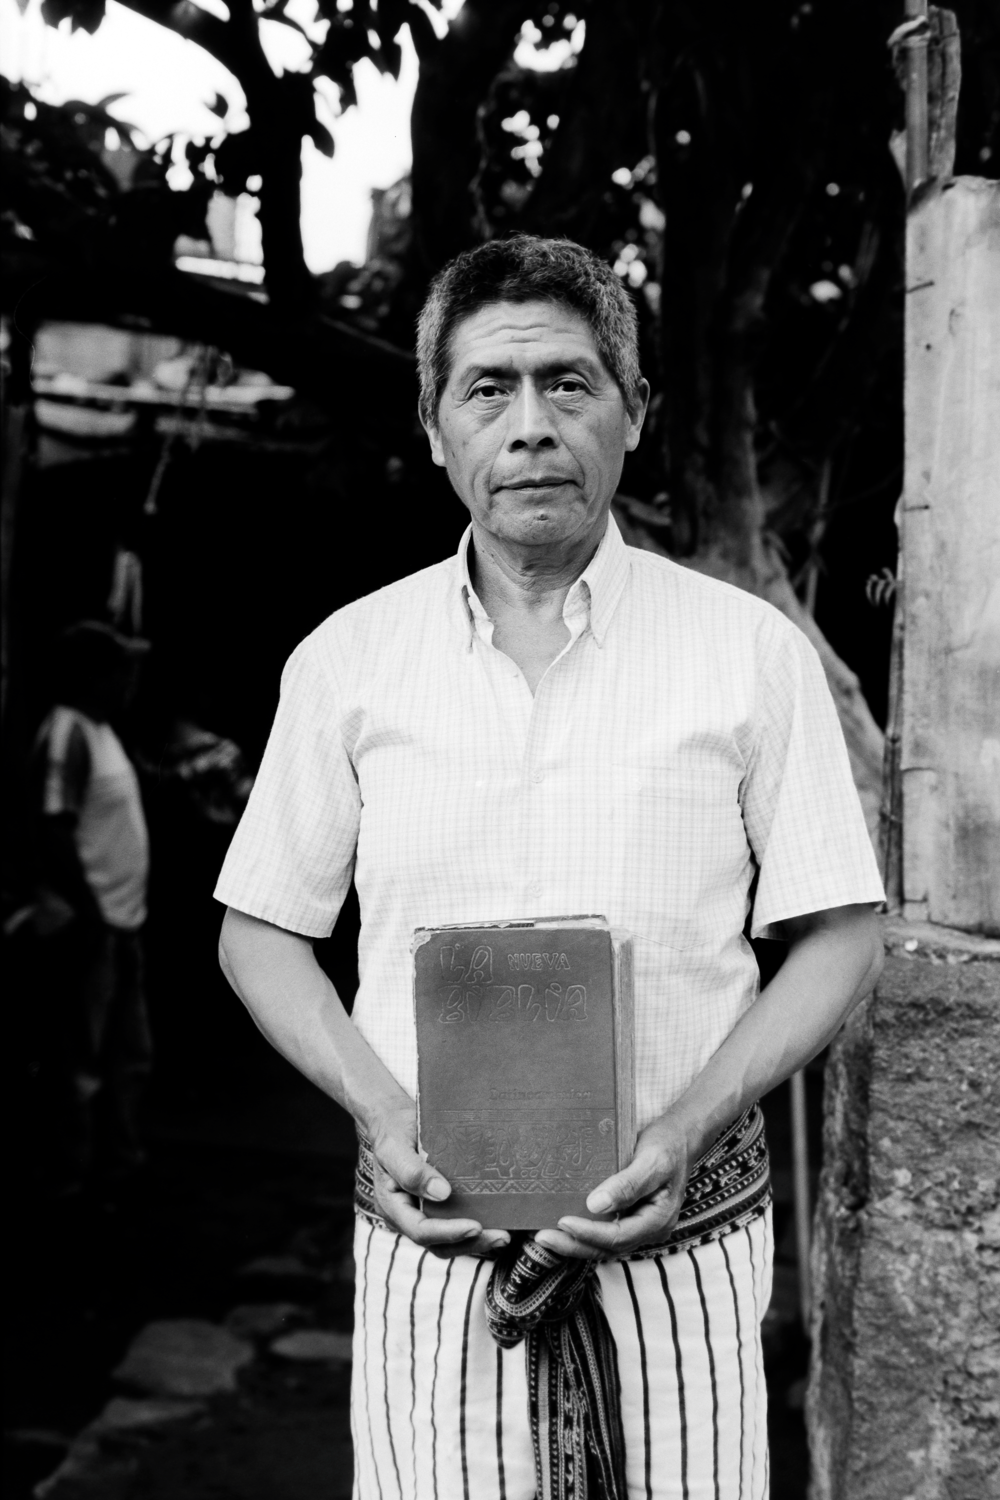 Don Geronimo and his Bible from Fr. Stan